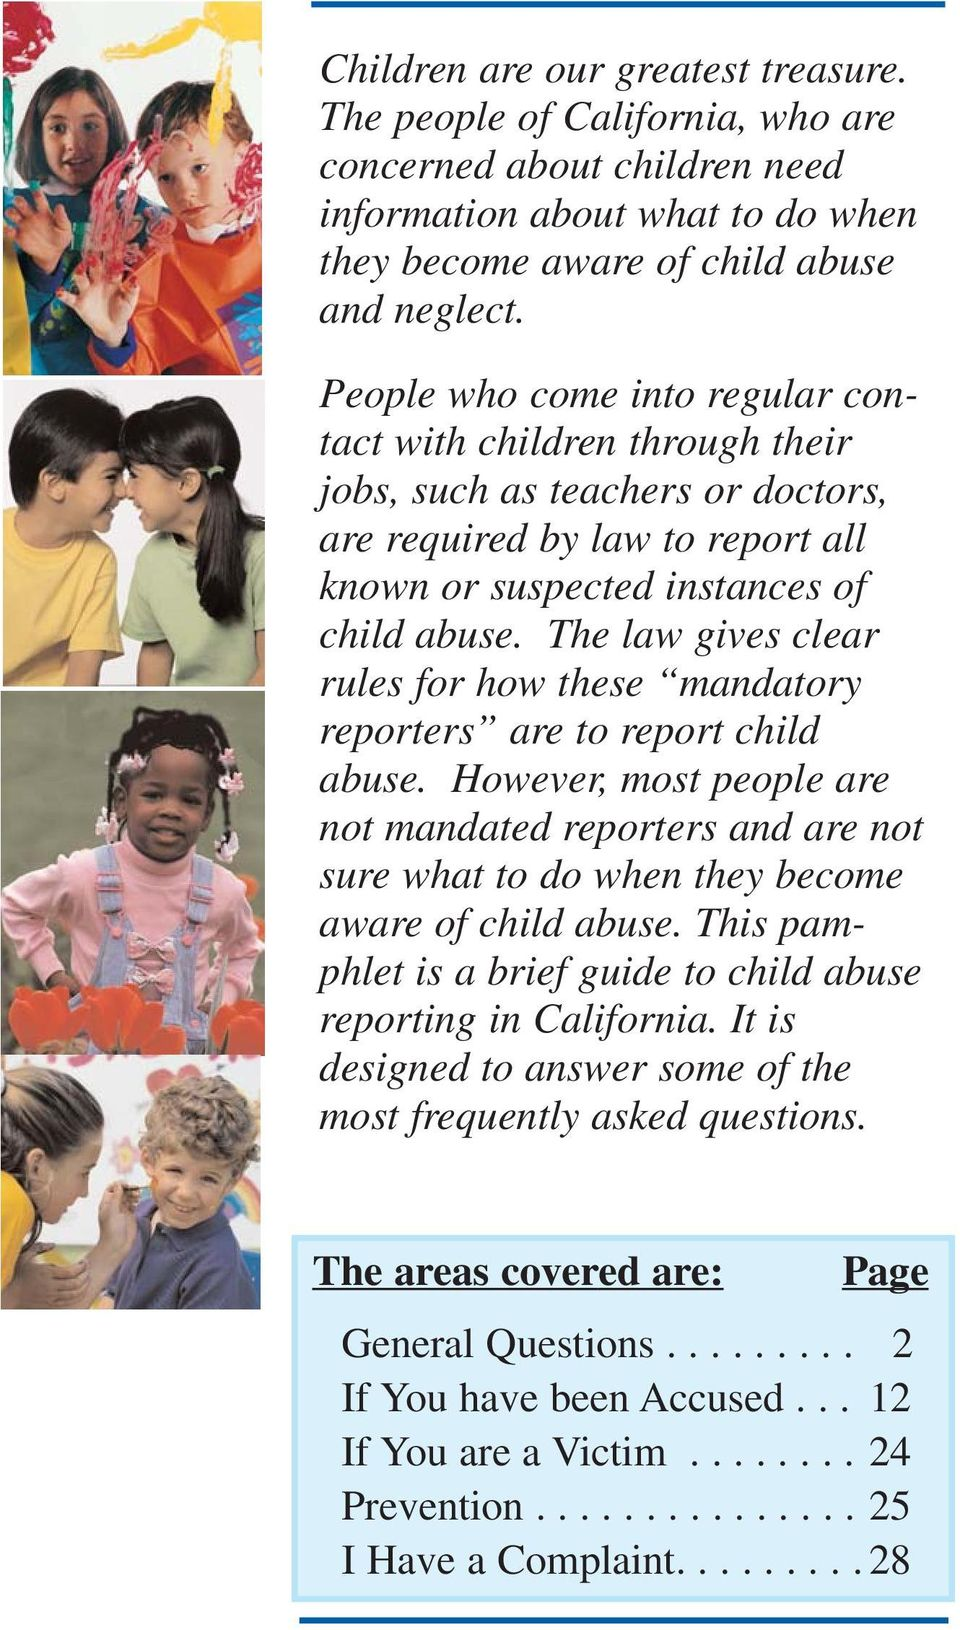 The law gives clear rules for how these mandatory reporters are to report child abuse.